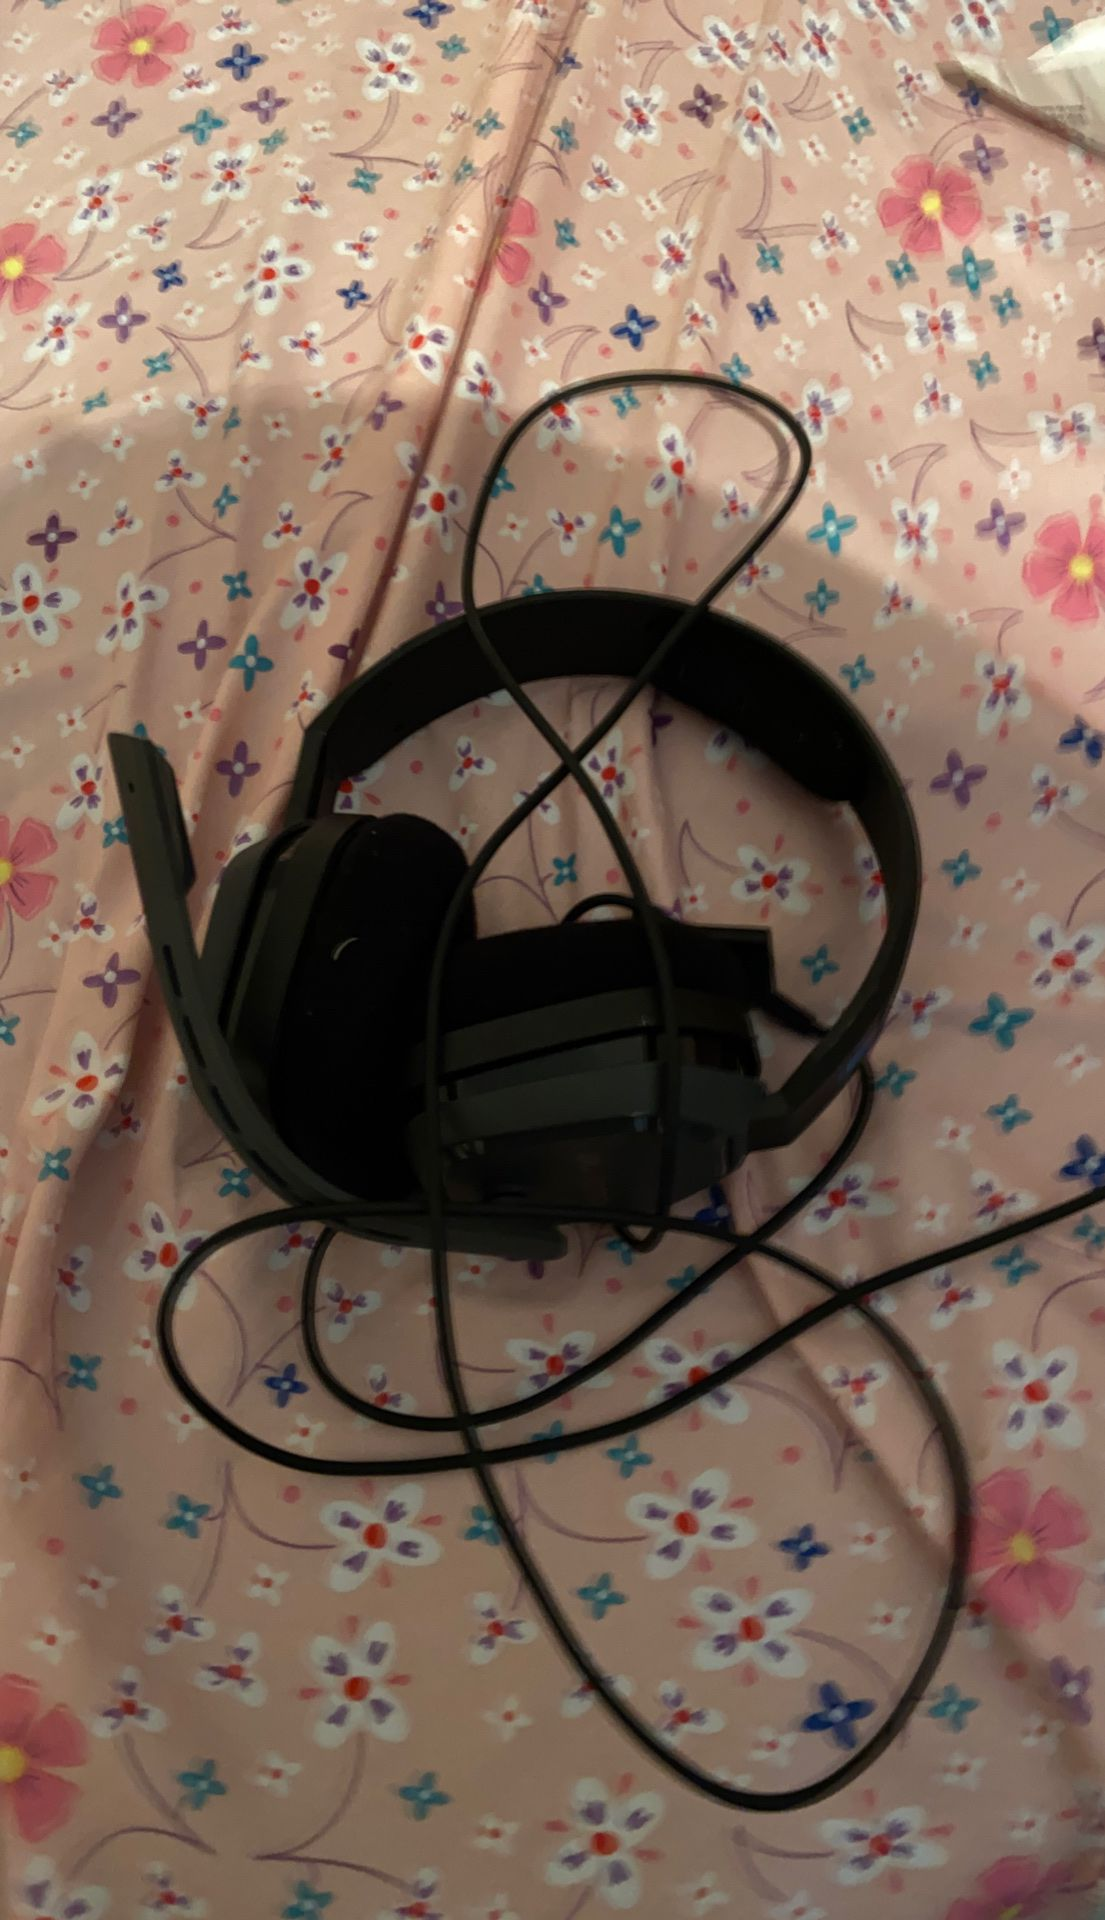 Astro 10 gaming headset (ps4)